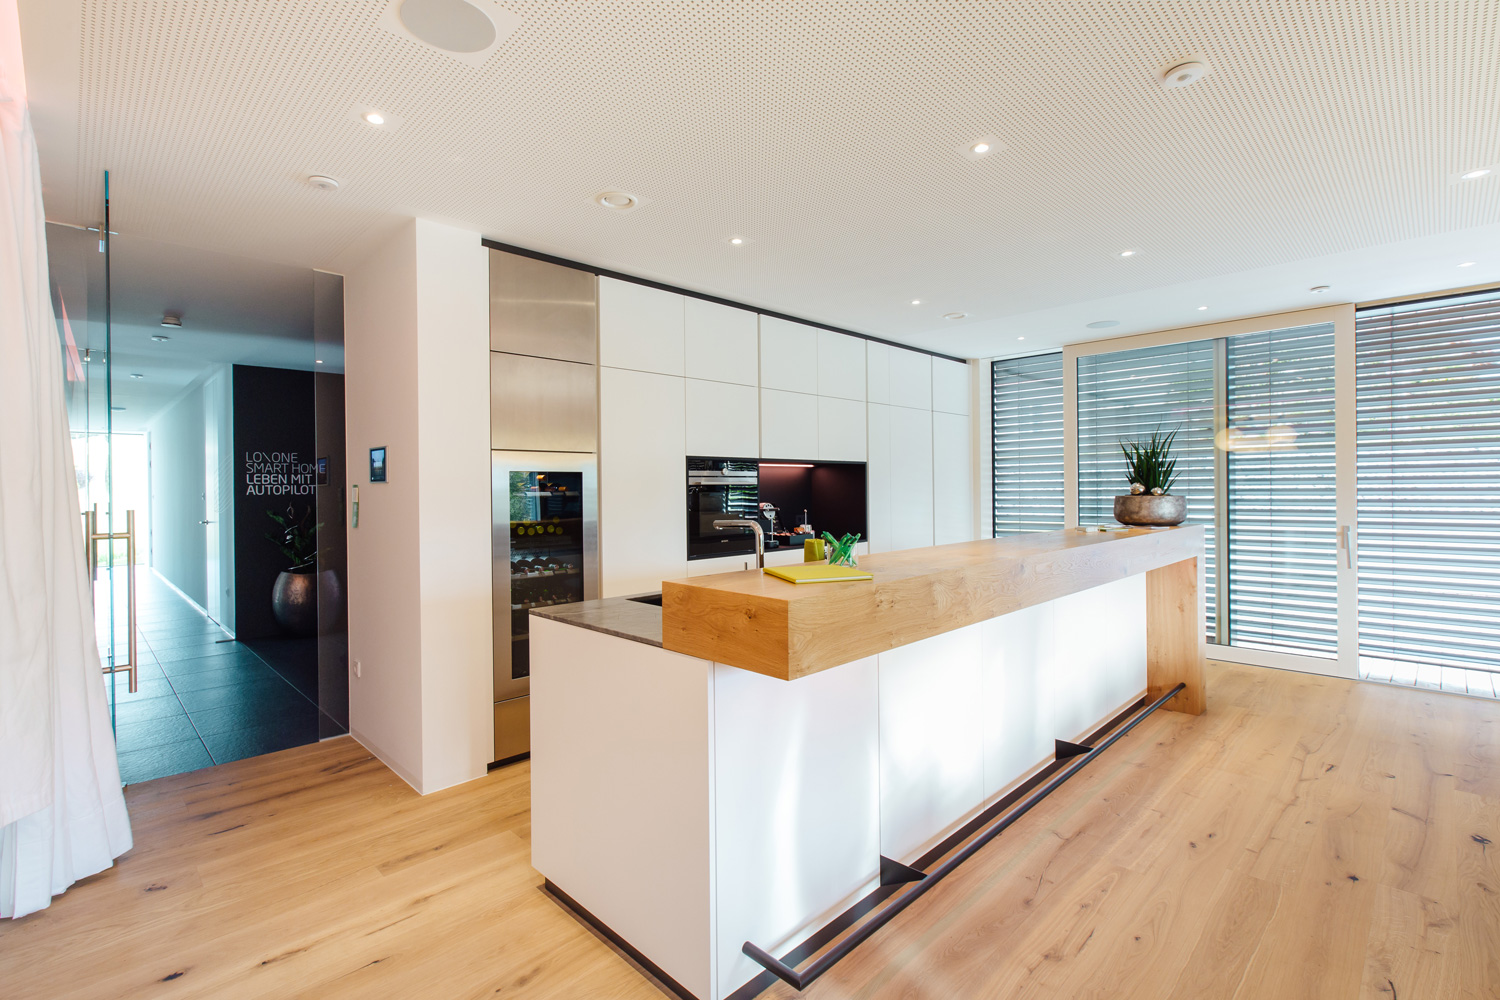 Kitchen in a Loxone Smart Home, with a Motion Sensor Air on the ceiling.